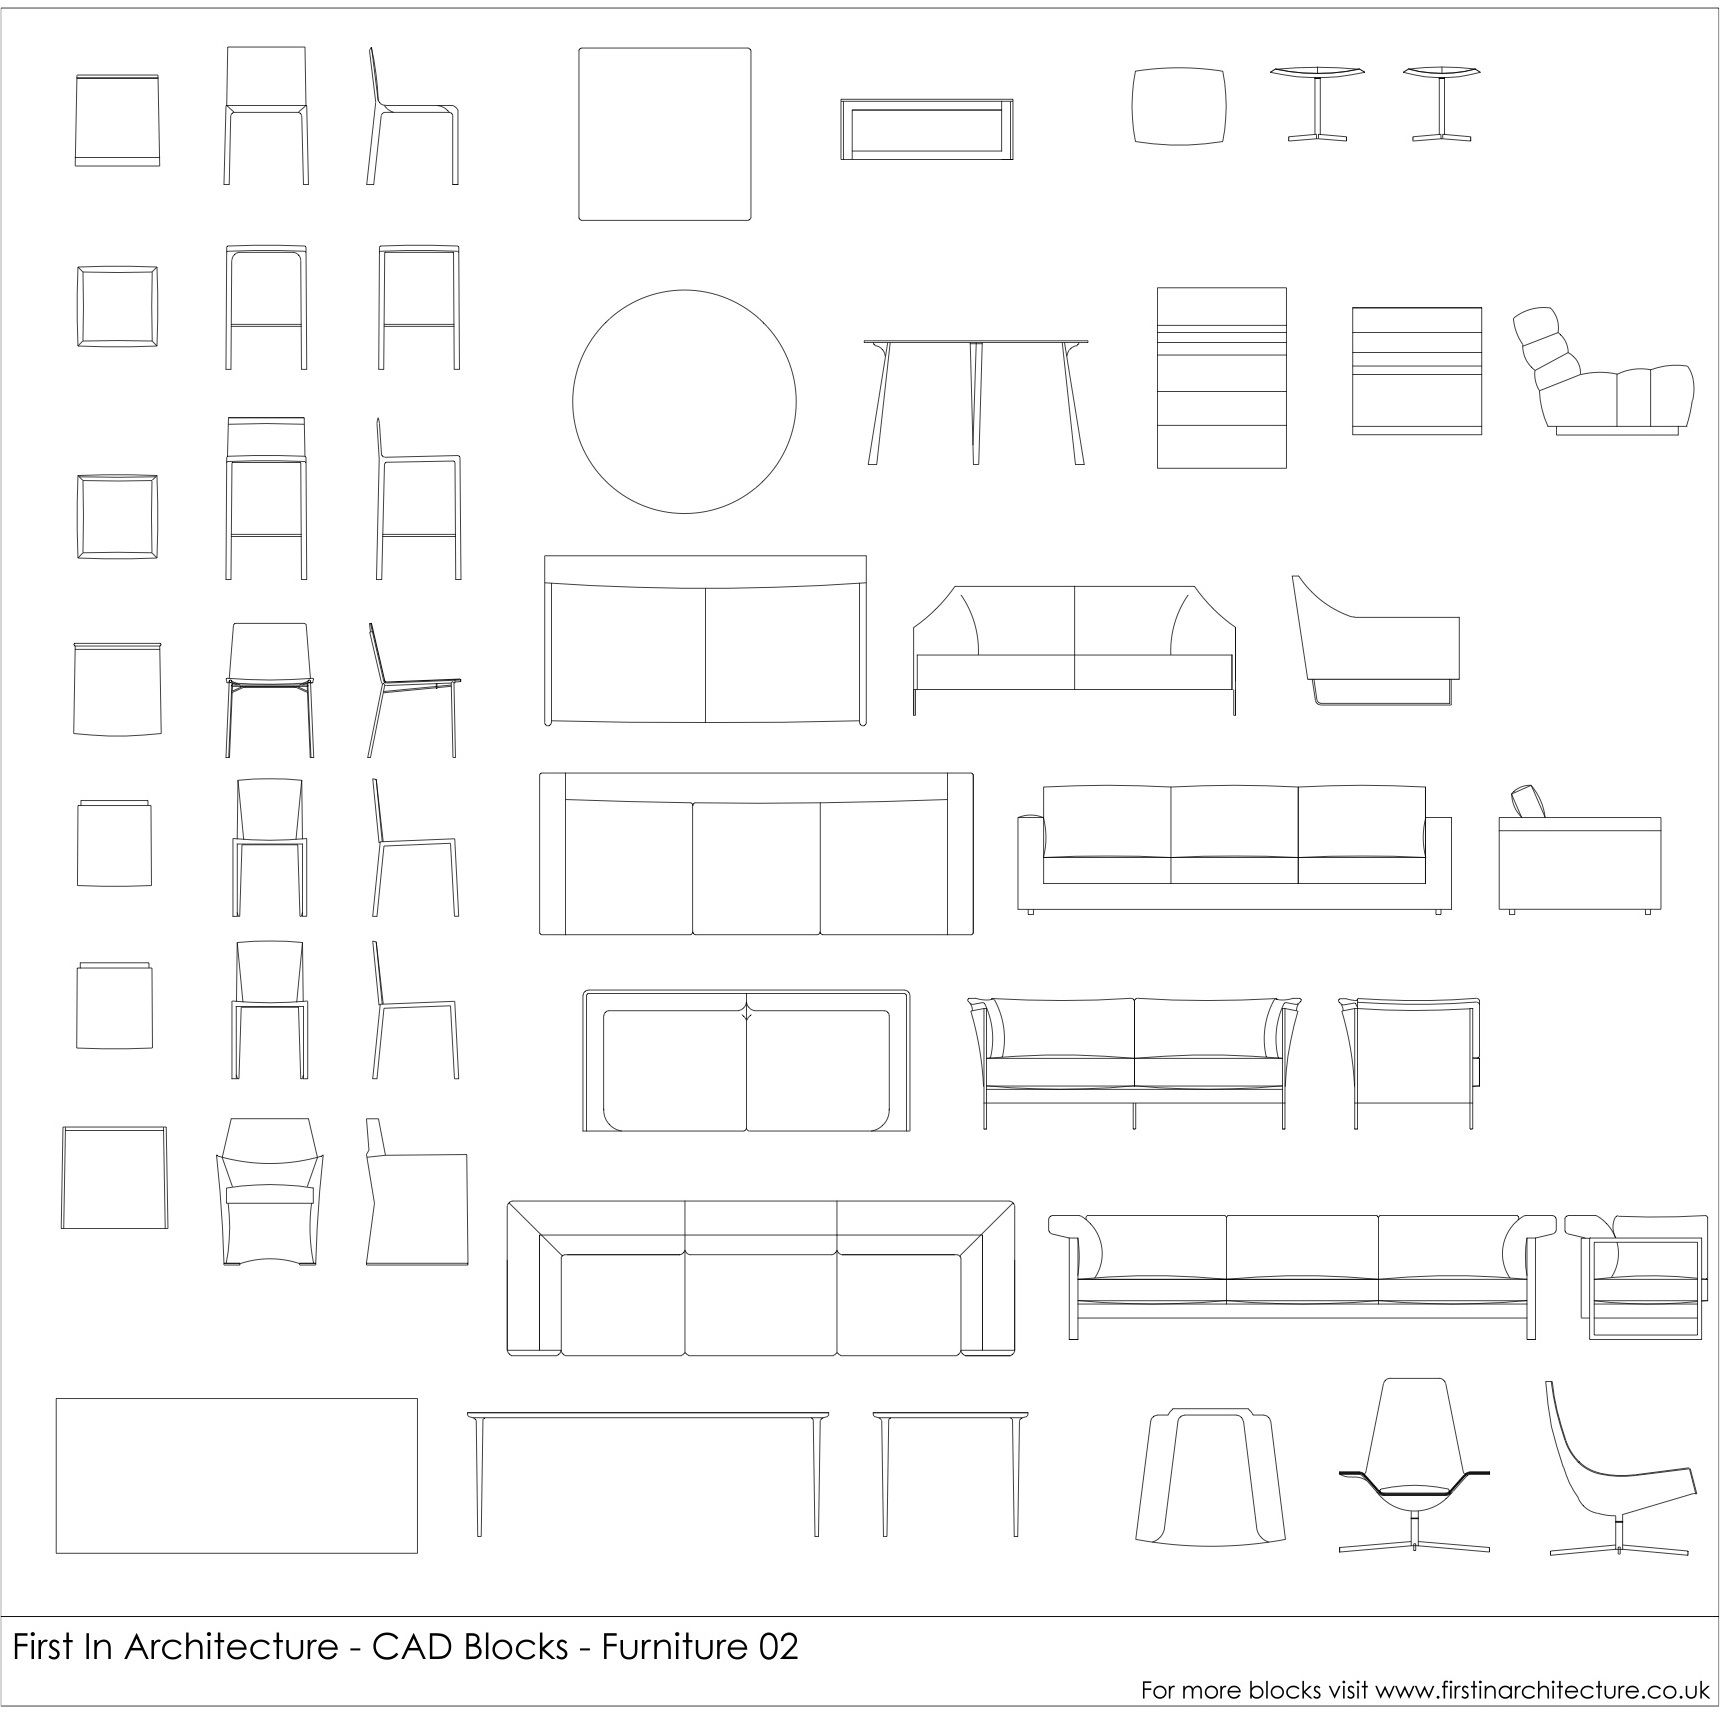 sofa bed cad block free best large sectional blocks  furniture pack 02 architecture pinterest